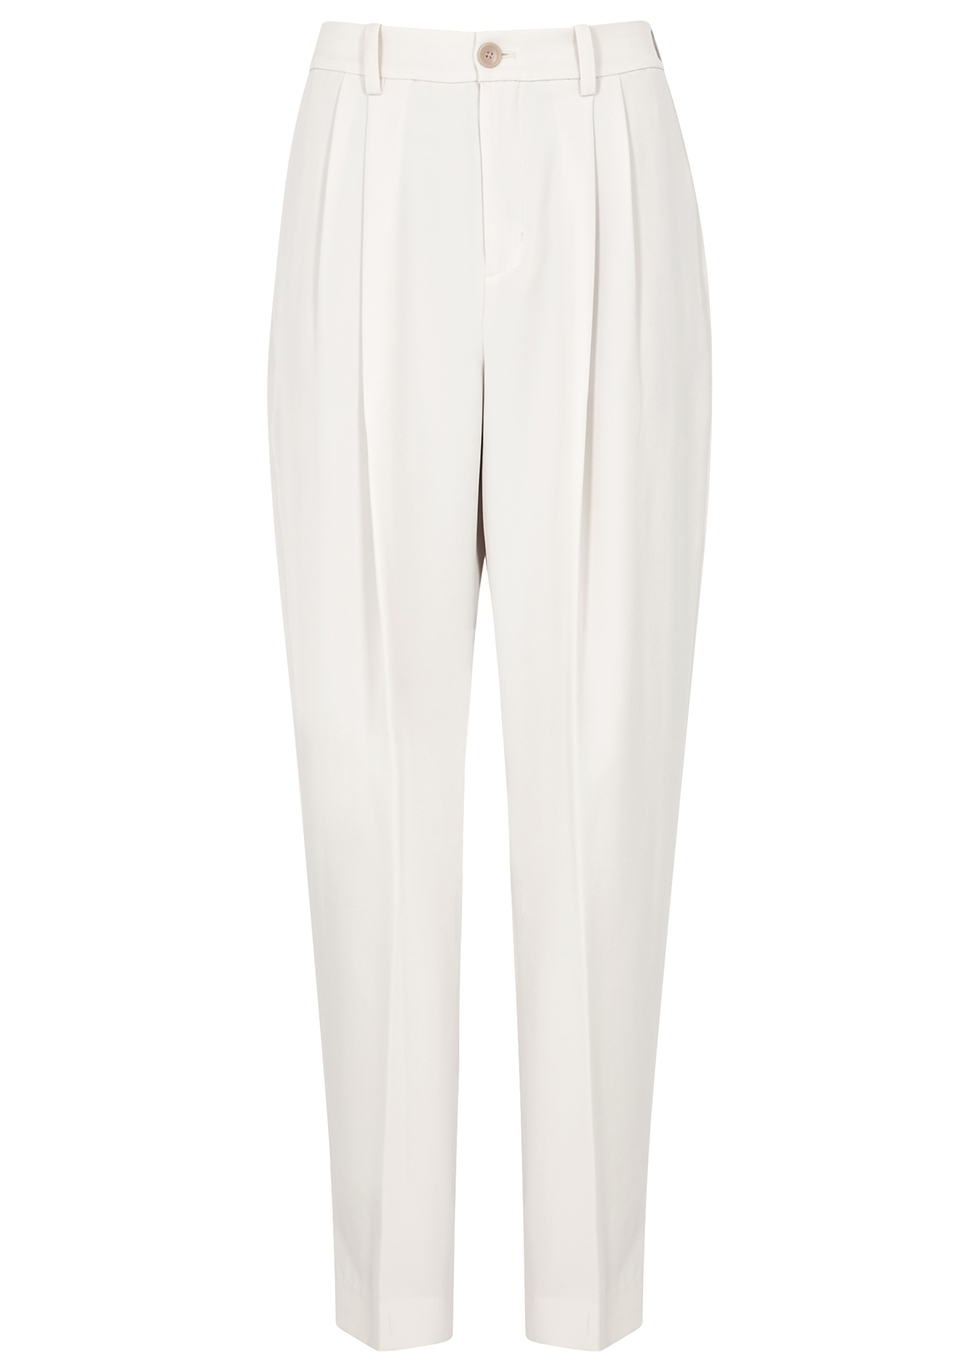 Off-white wide-leg trousers - Vince